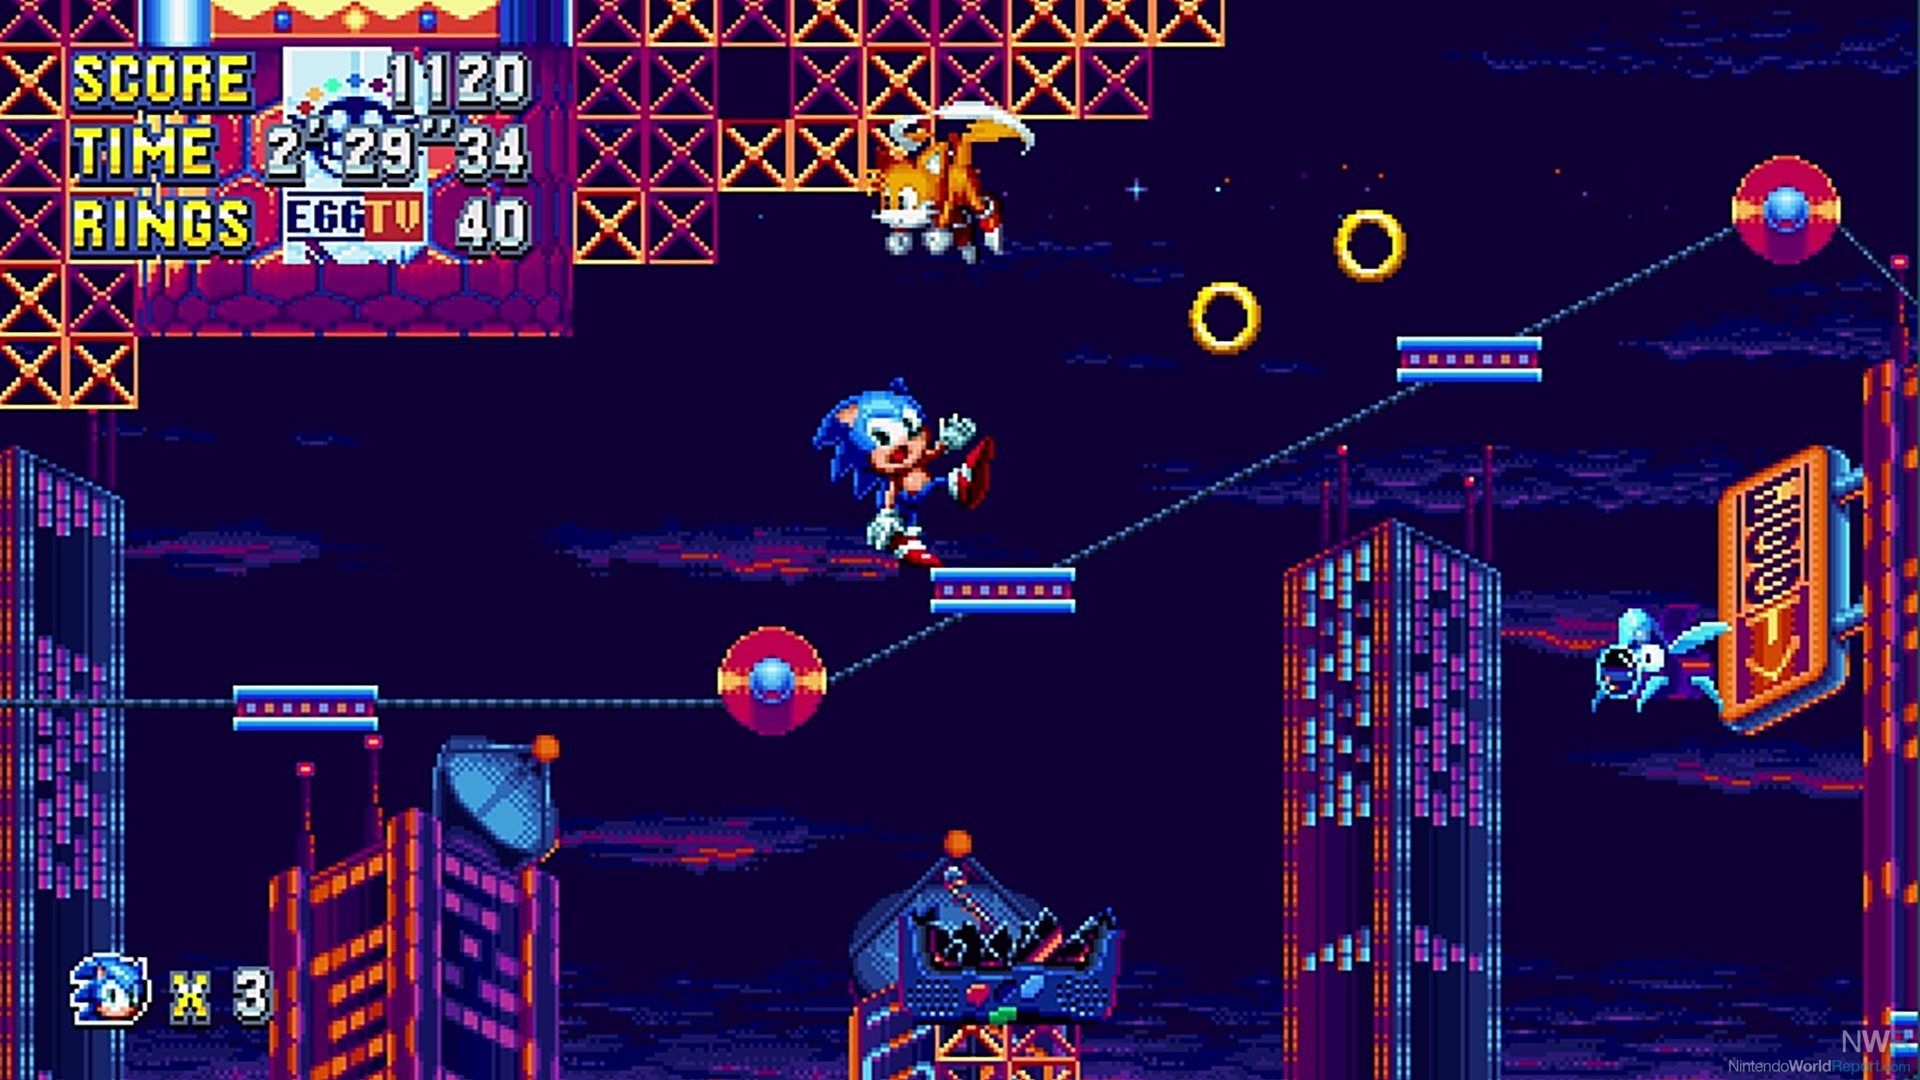 Sonic Mania lands on the Nintendo Switch August 15th